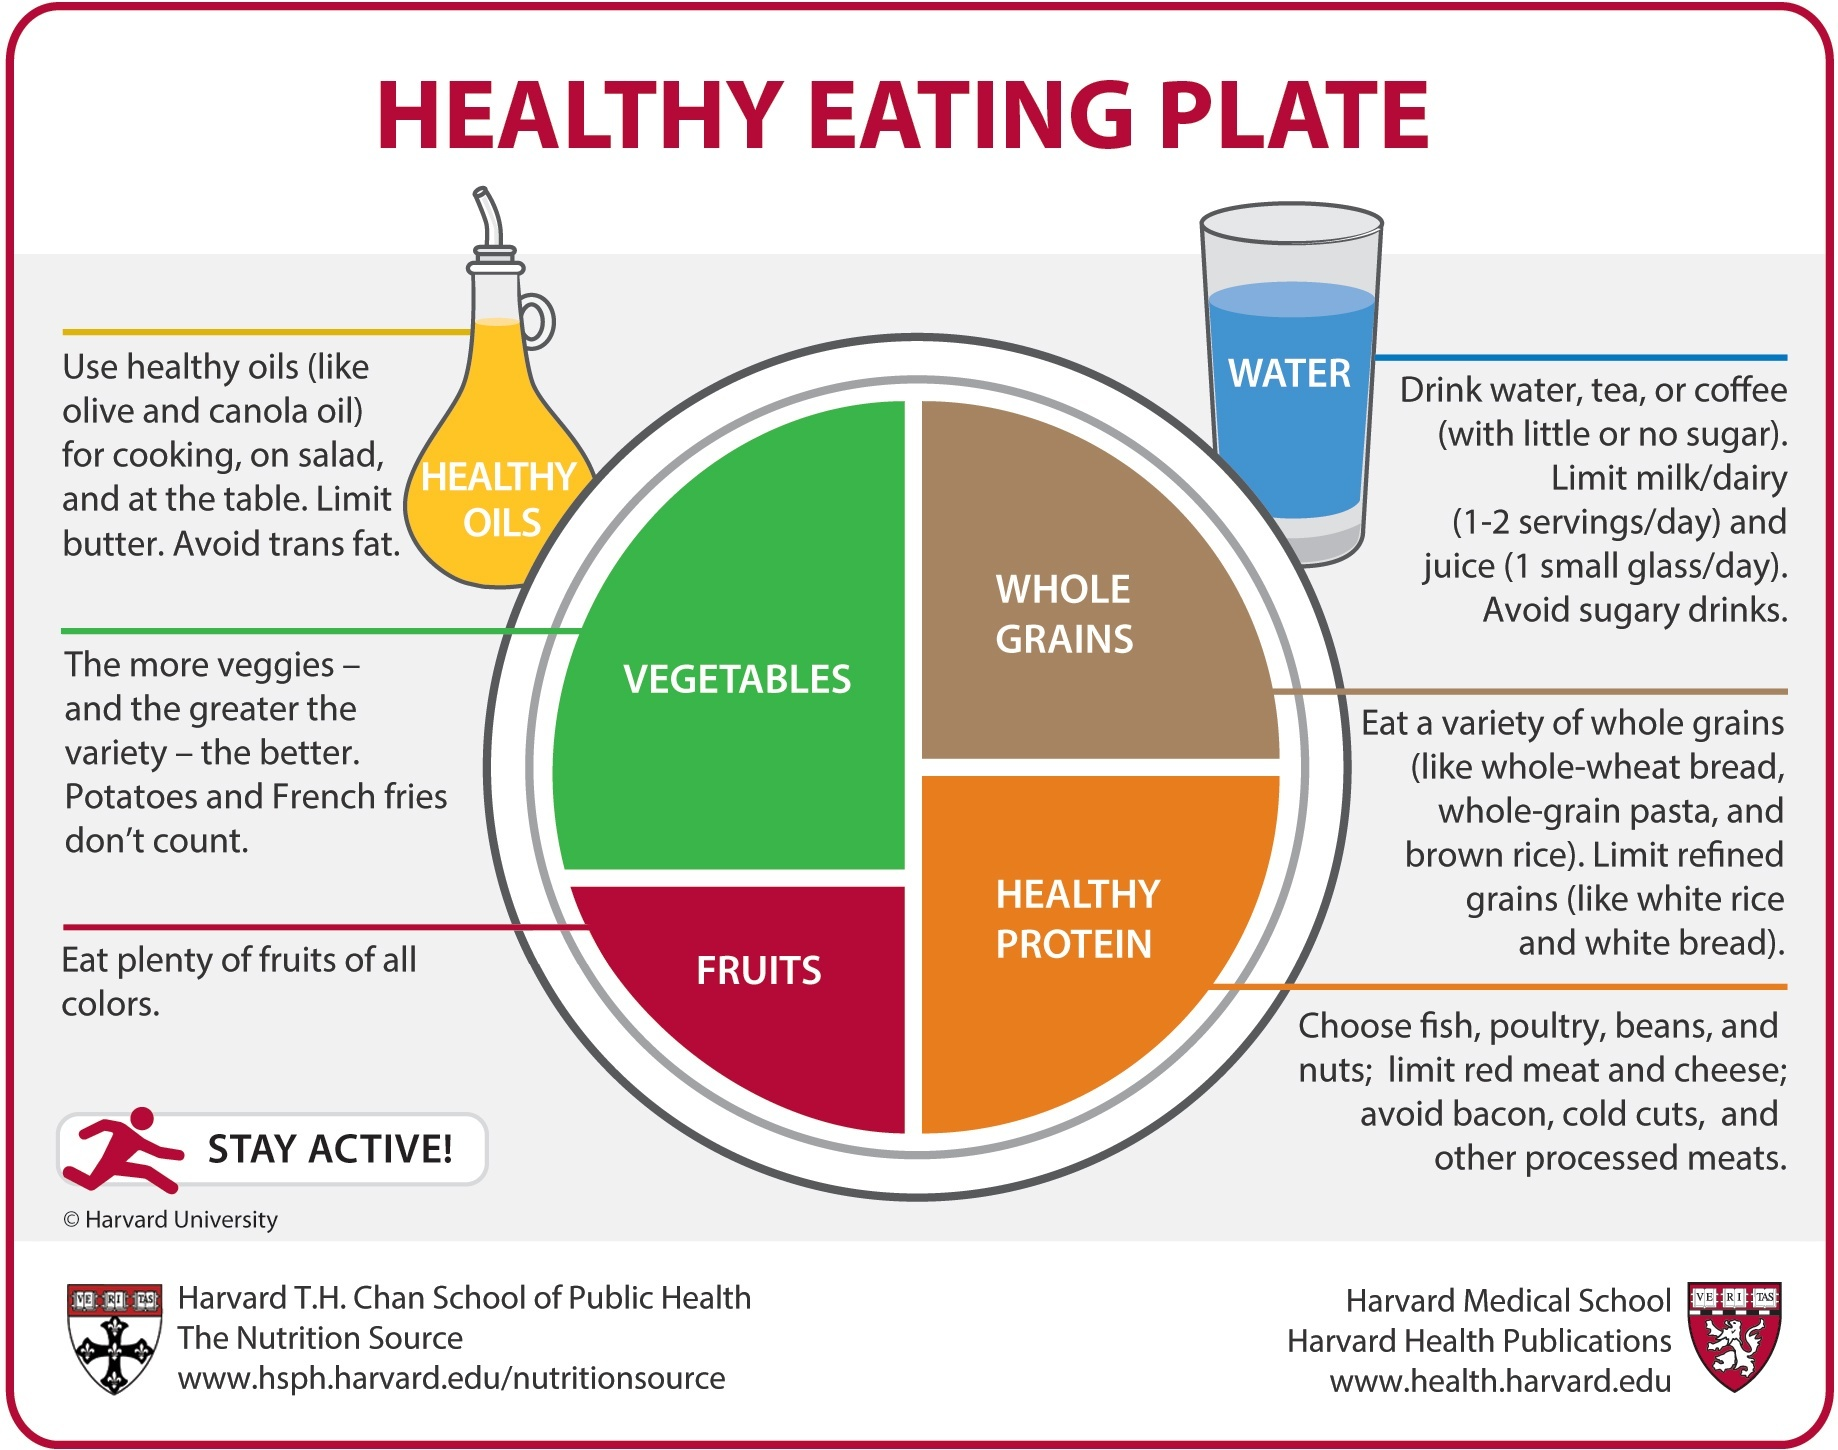 Image of a healthy eating plate, divided into vegetables, whole grains, fruits, and healthy protein.